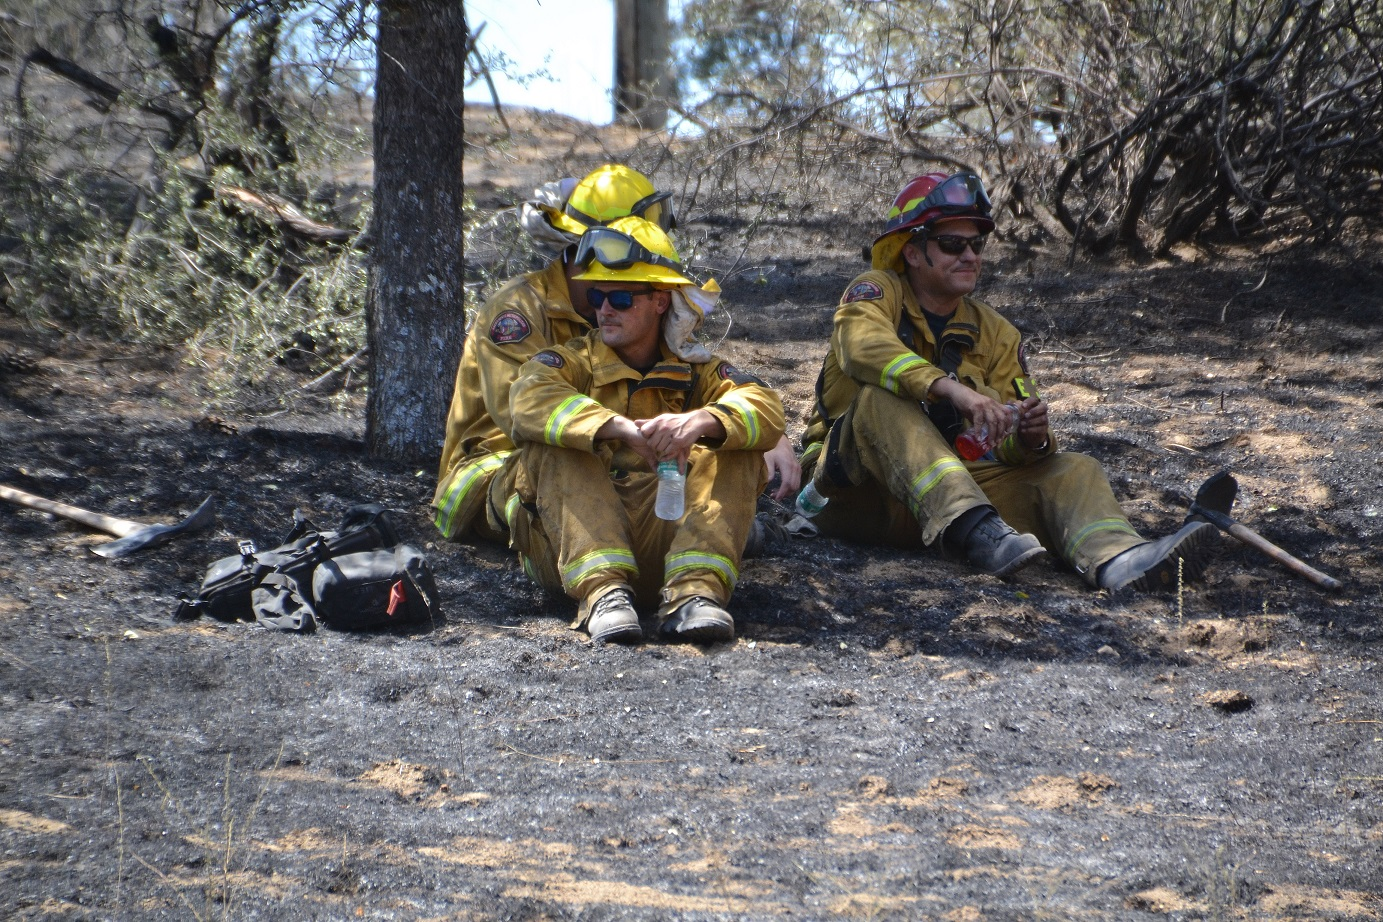 Firefighters taking a break from a hot dirty job - photo by Gina Clugston